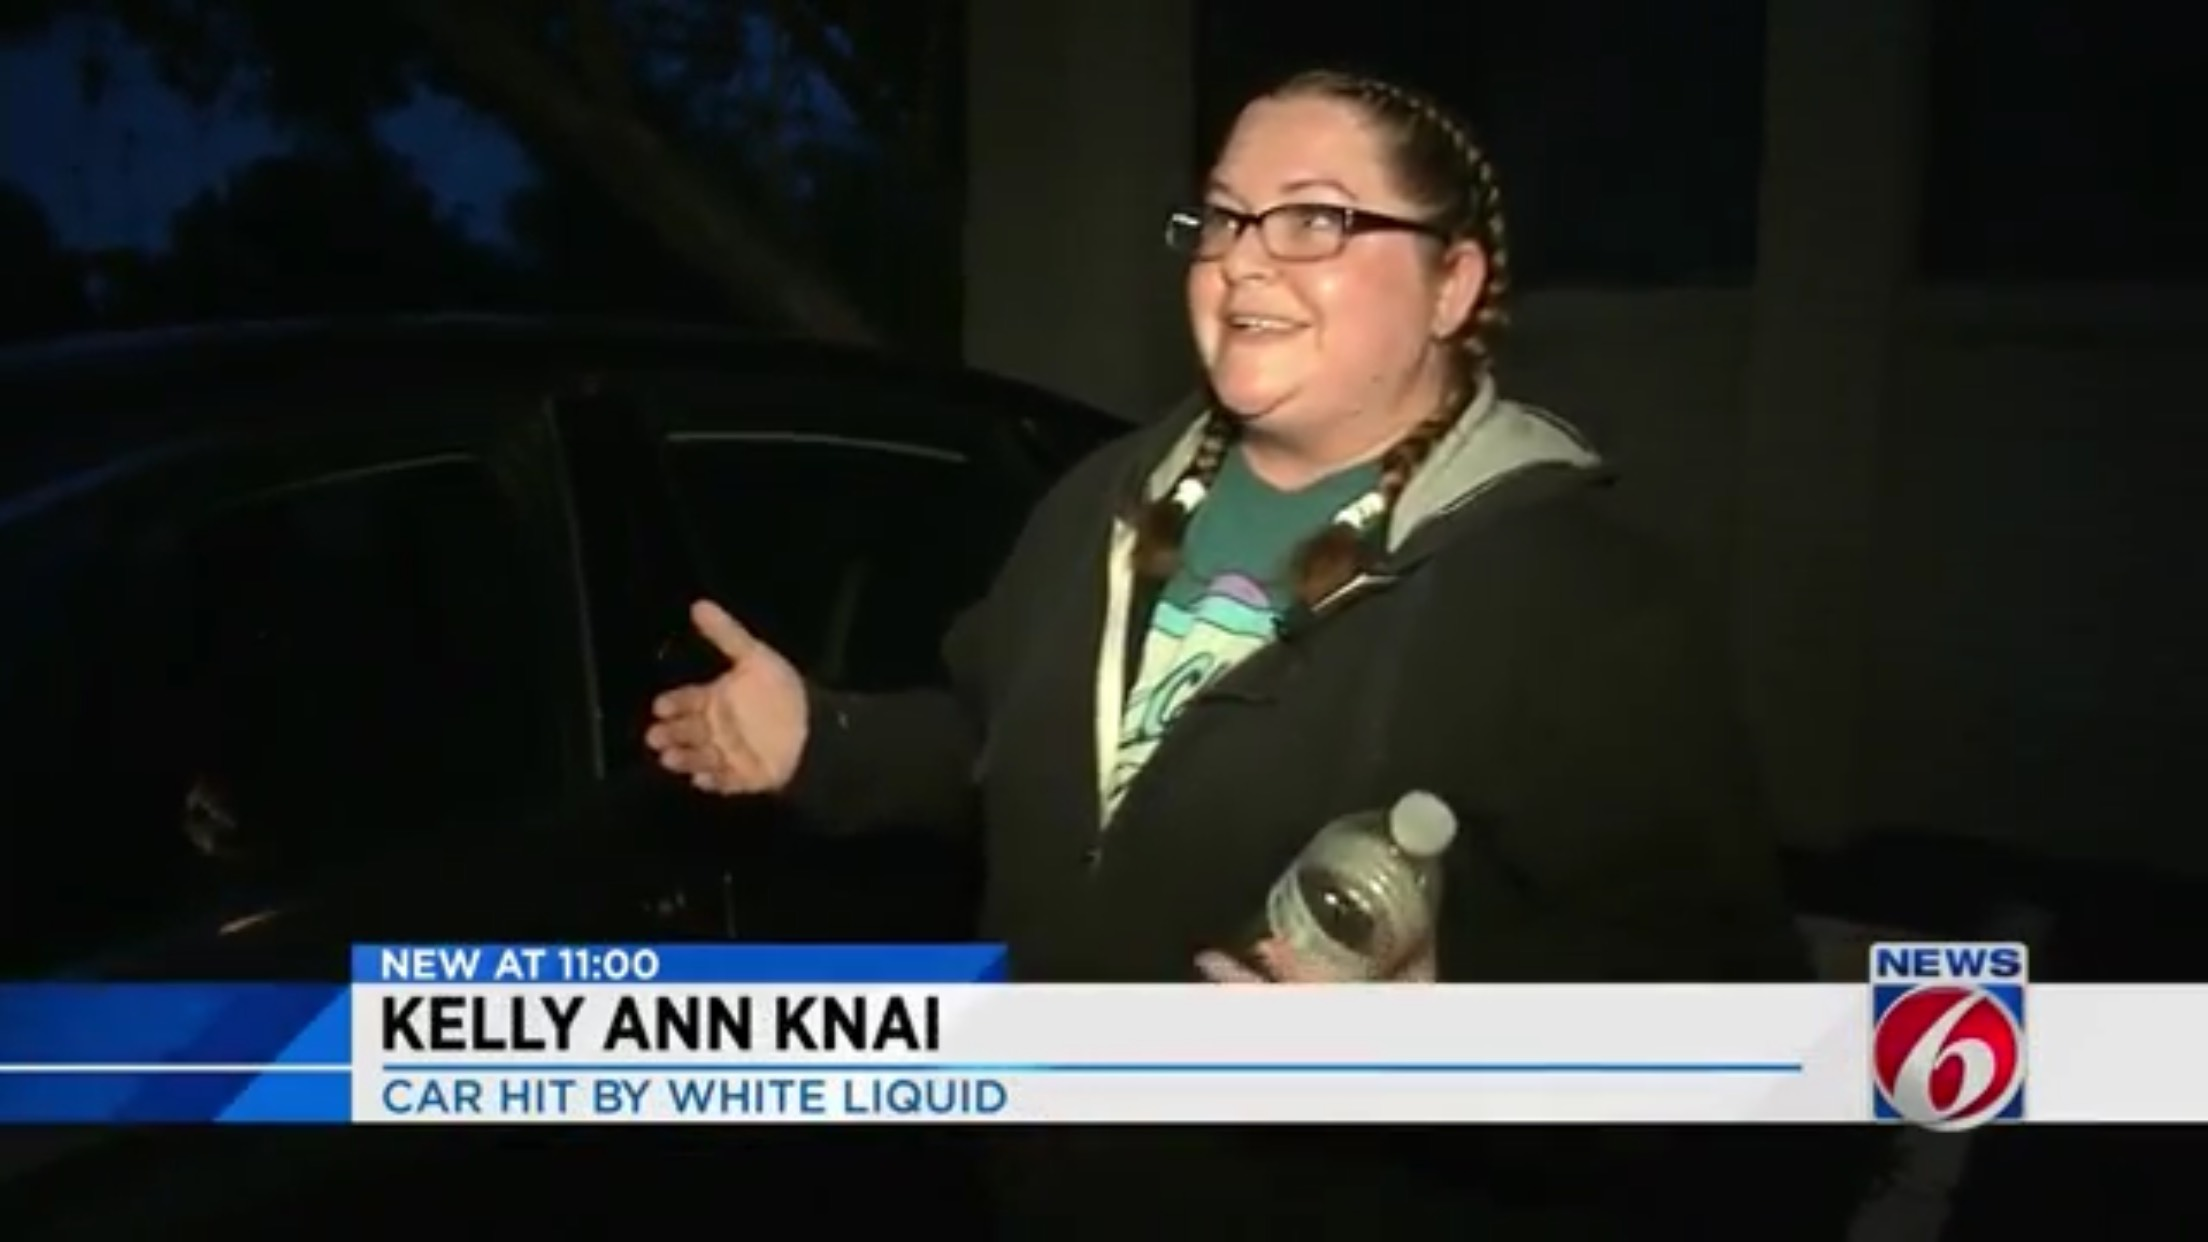 Kelly Ann Knai: Car Hit By White Liquid